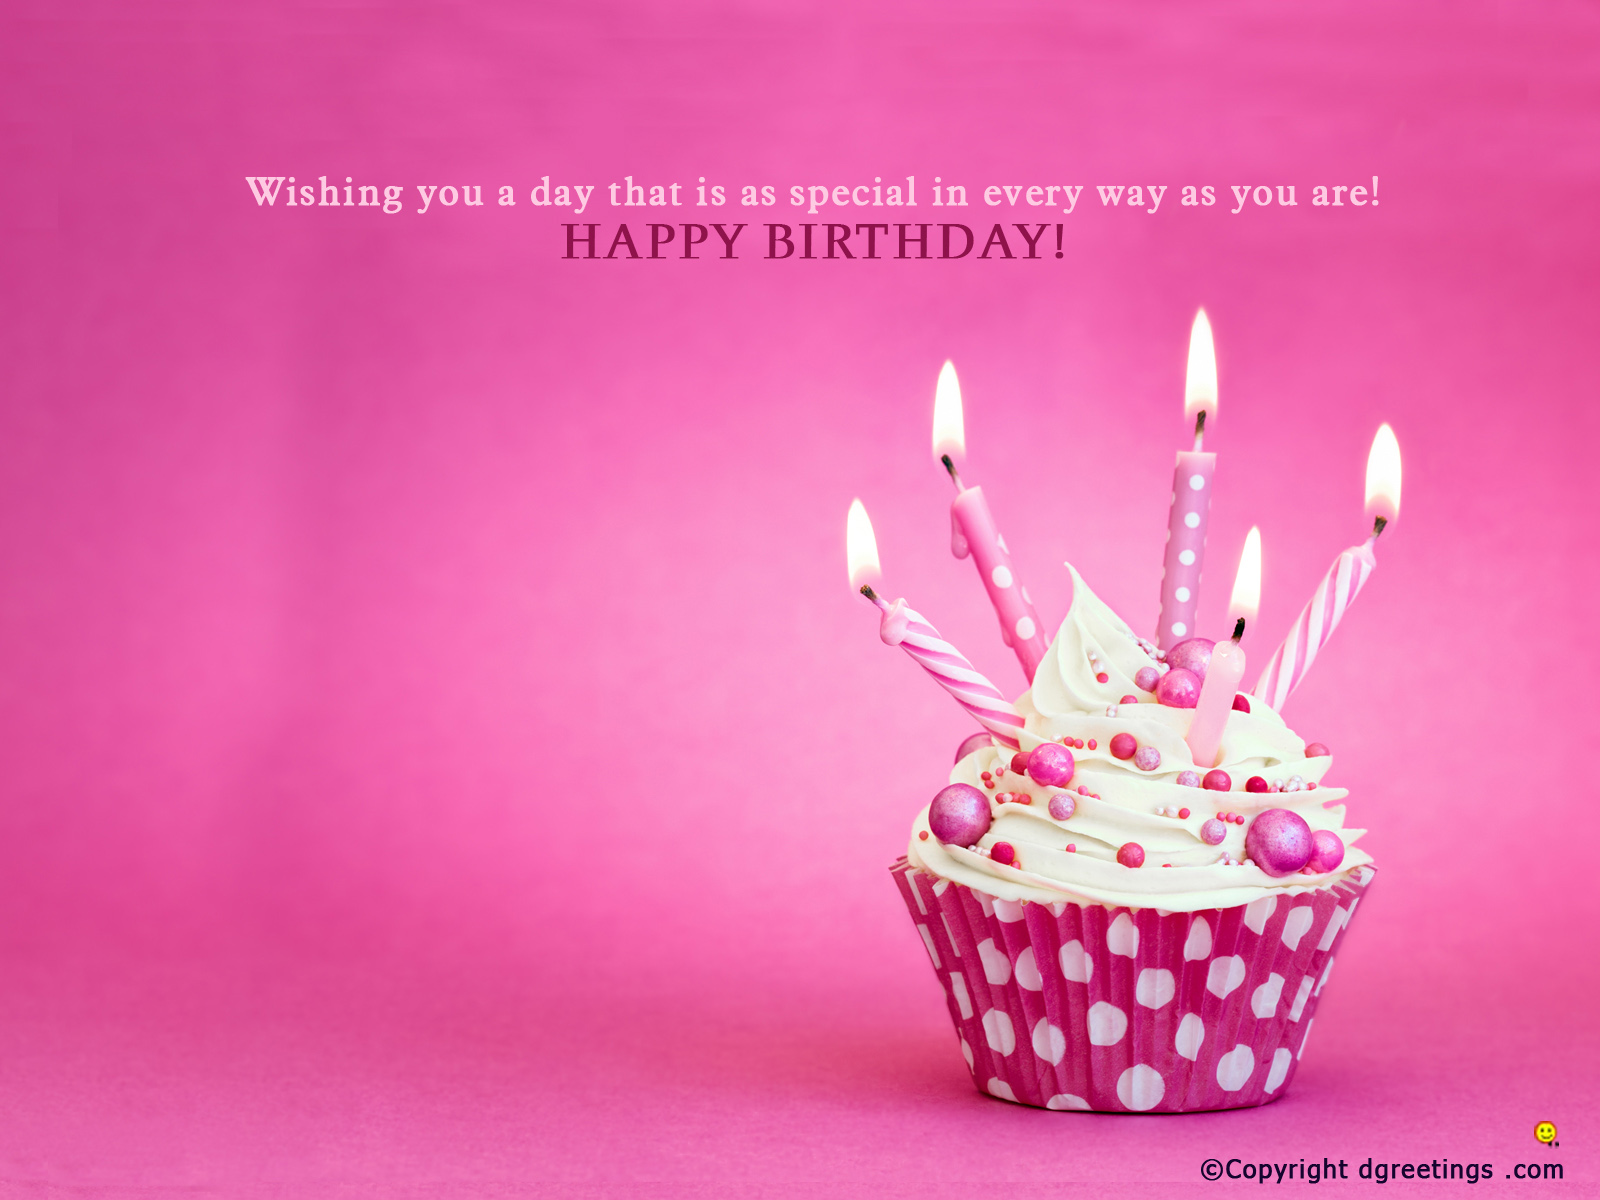 Free Birthday Wallpapers For Desktop Wallpapersafari